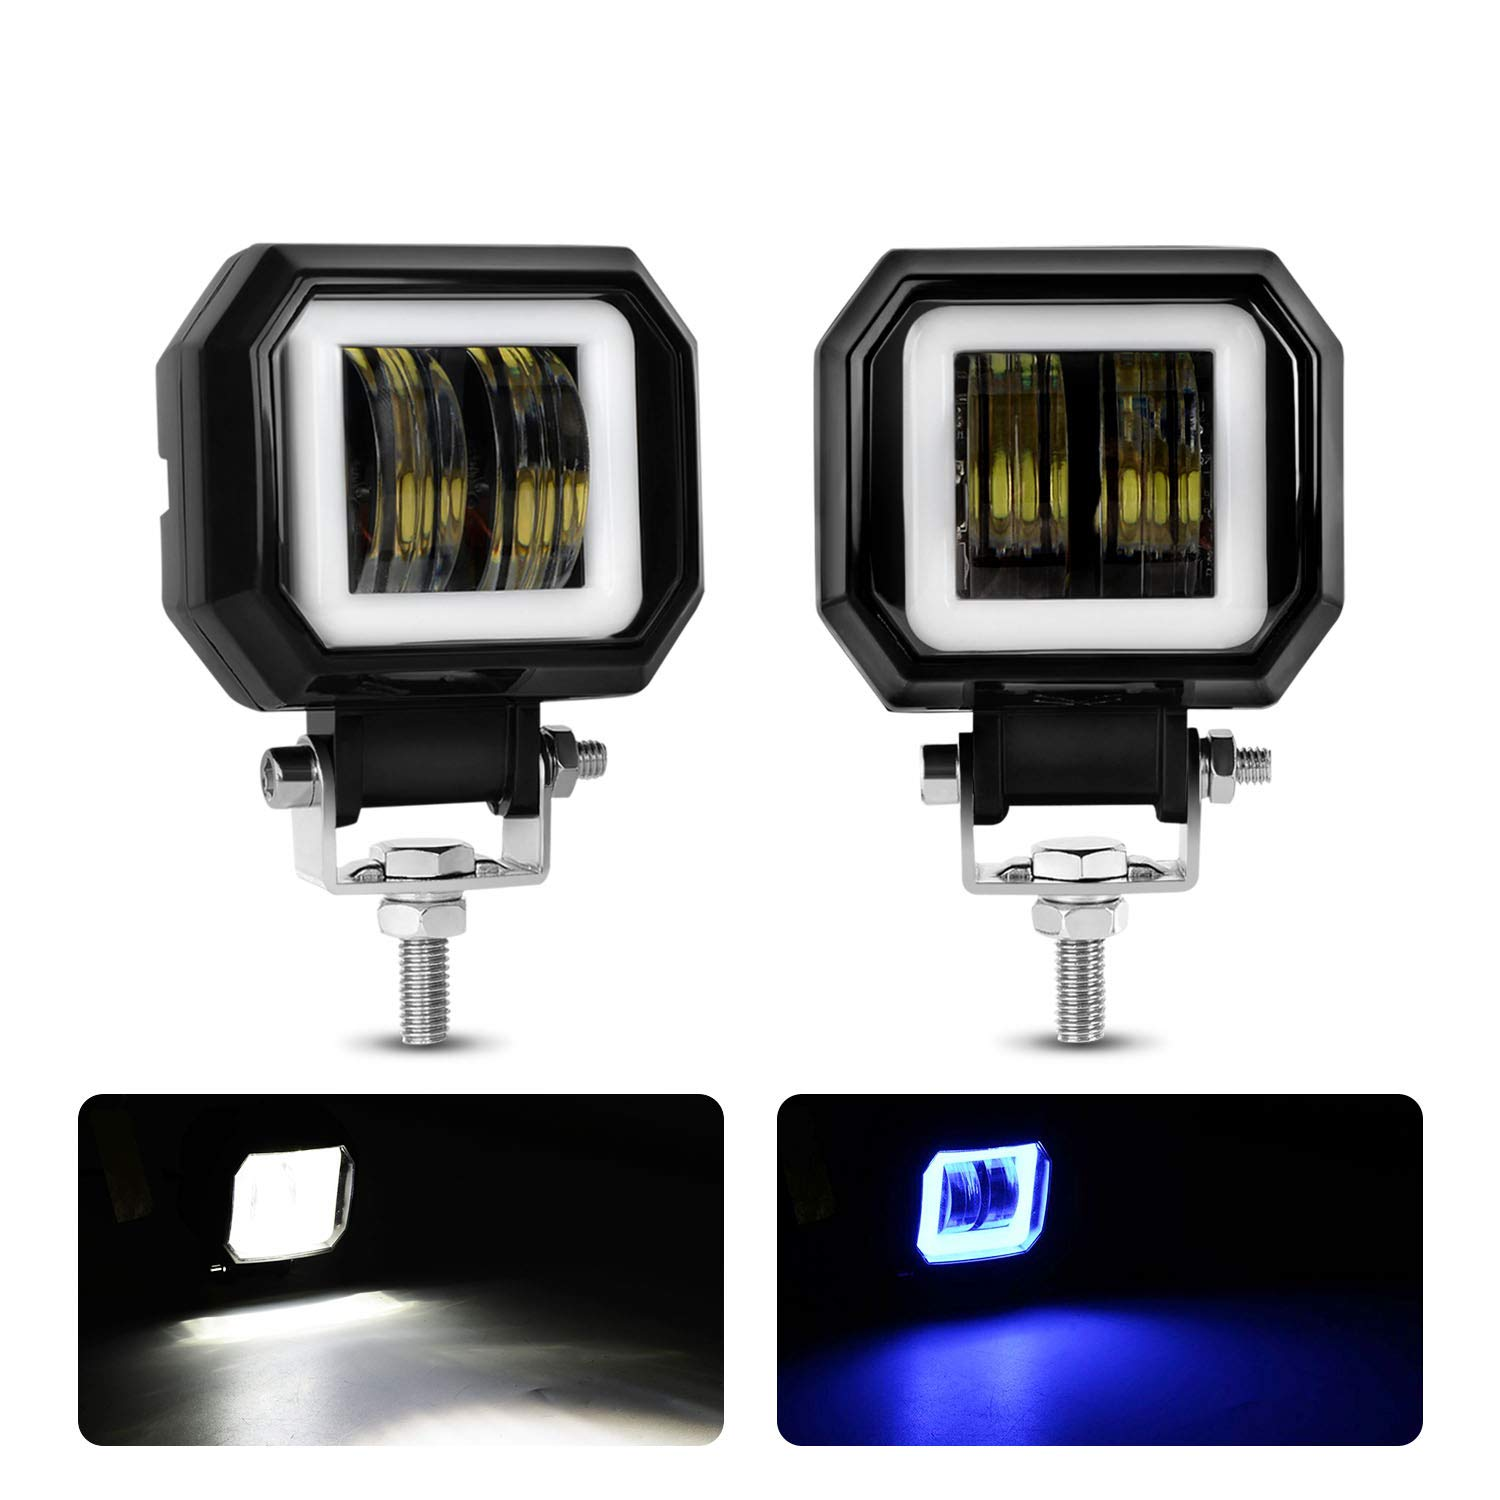 Motorcycle Headlight LED Fog Light 3 inch Round Blue Angel Eye DRL White Light 10-80V DC 8000LM Waterproof Off-road Vehicle Marine Work Light 2 PCS